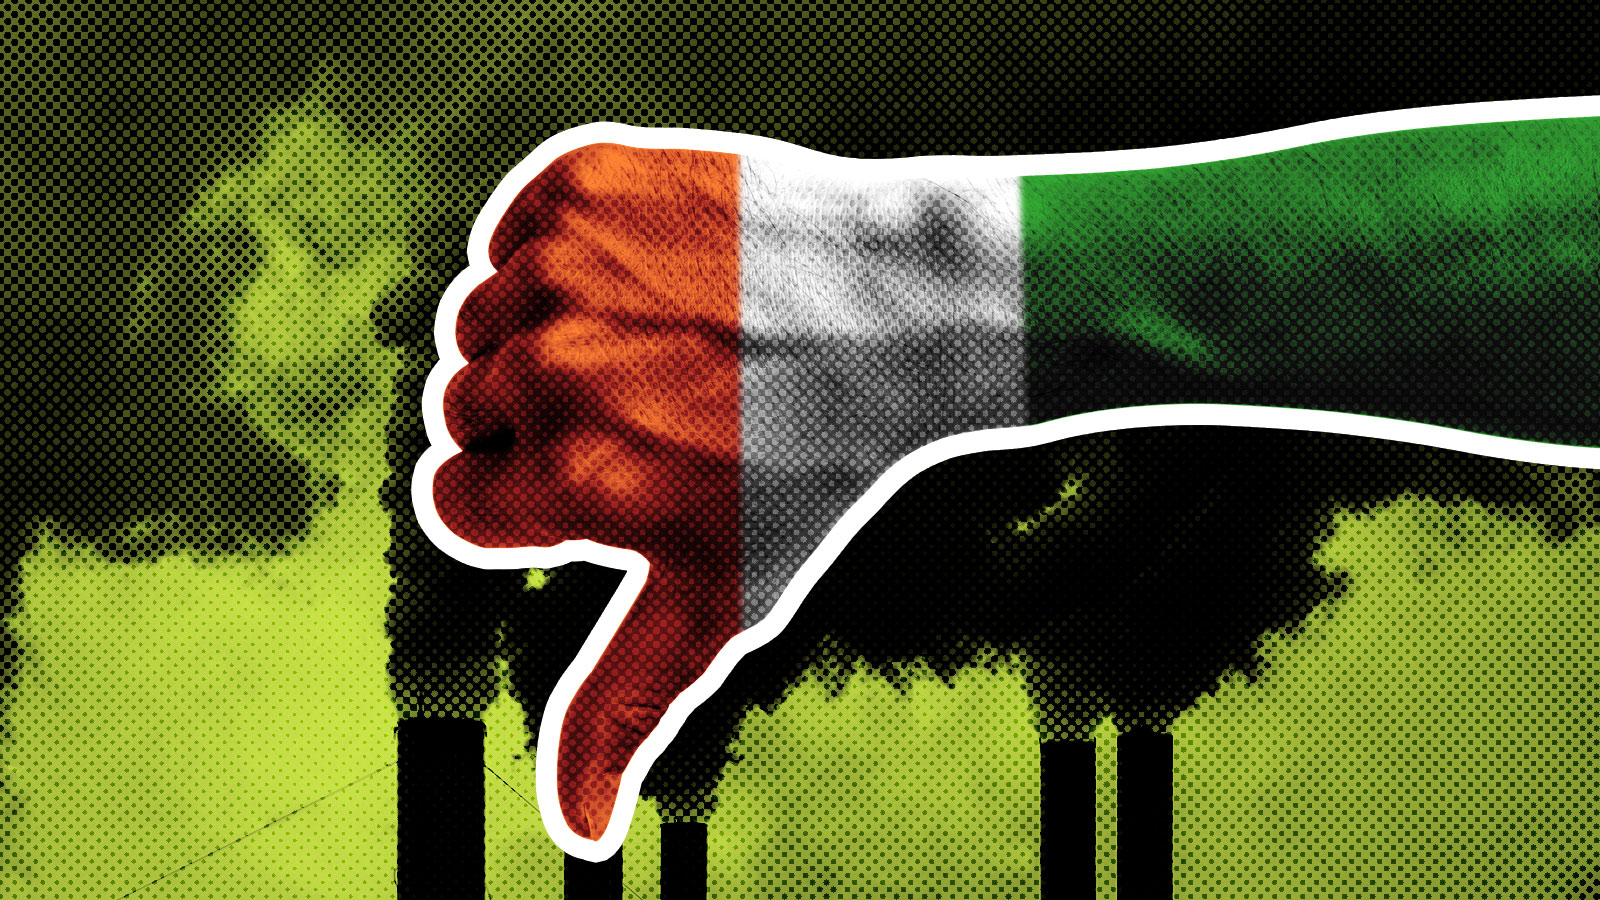 Ireland says no to fossil fuels